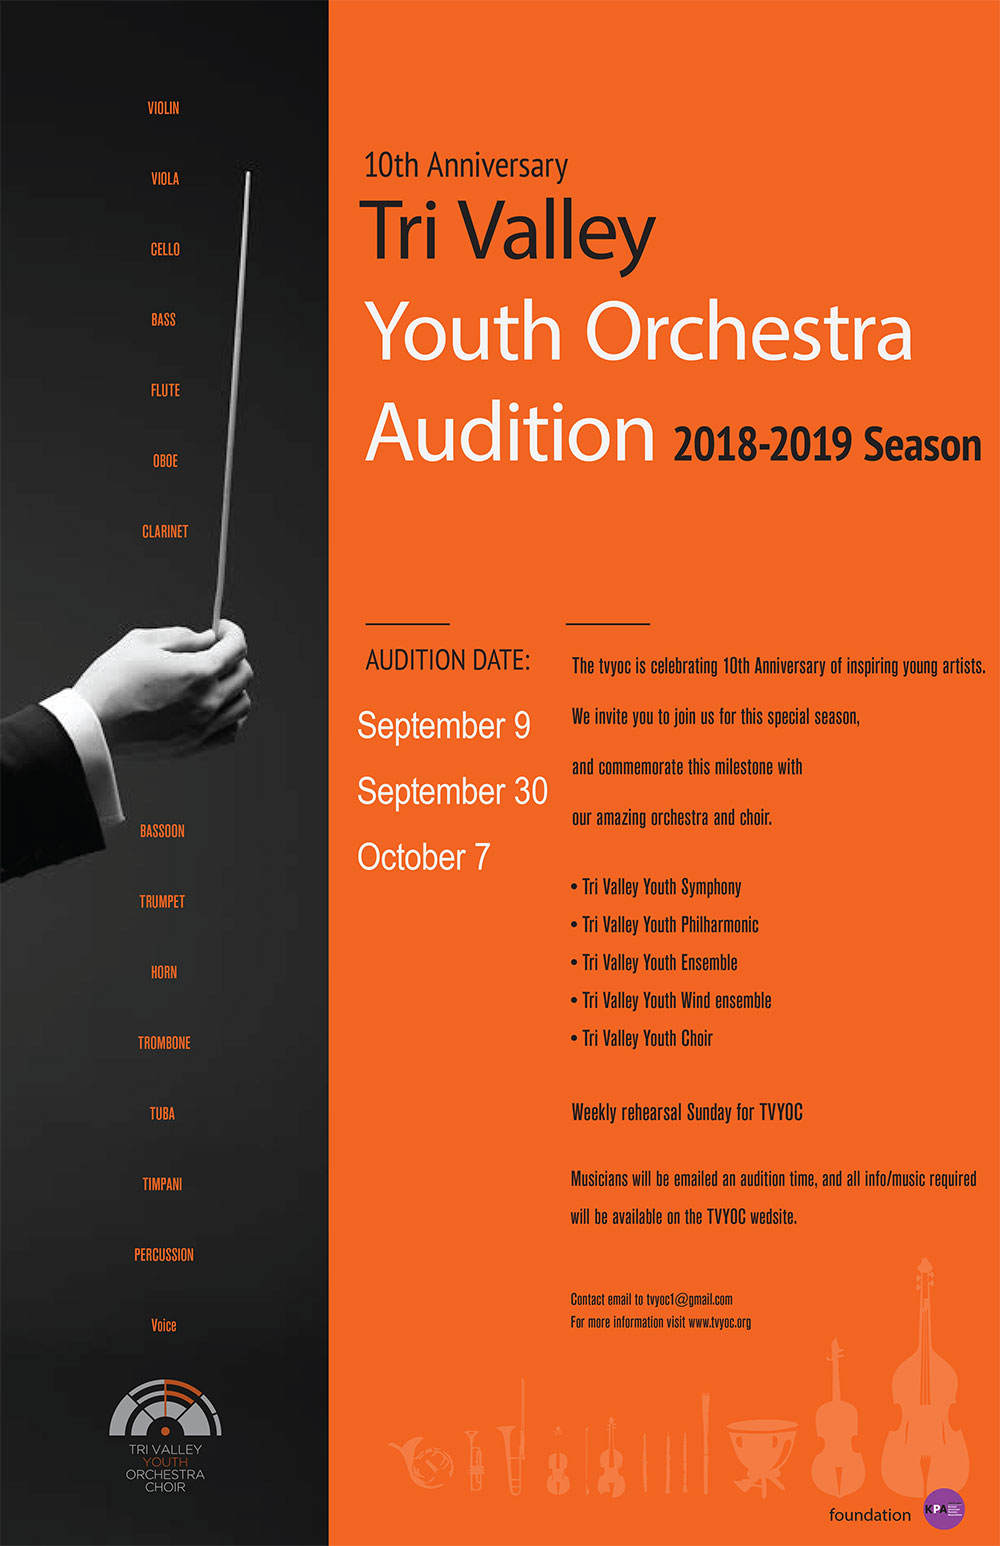 10th_Tri-Valley-Youth-Orchestra-Audition_01.jpg